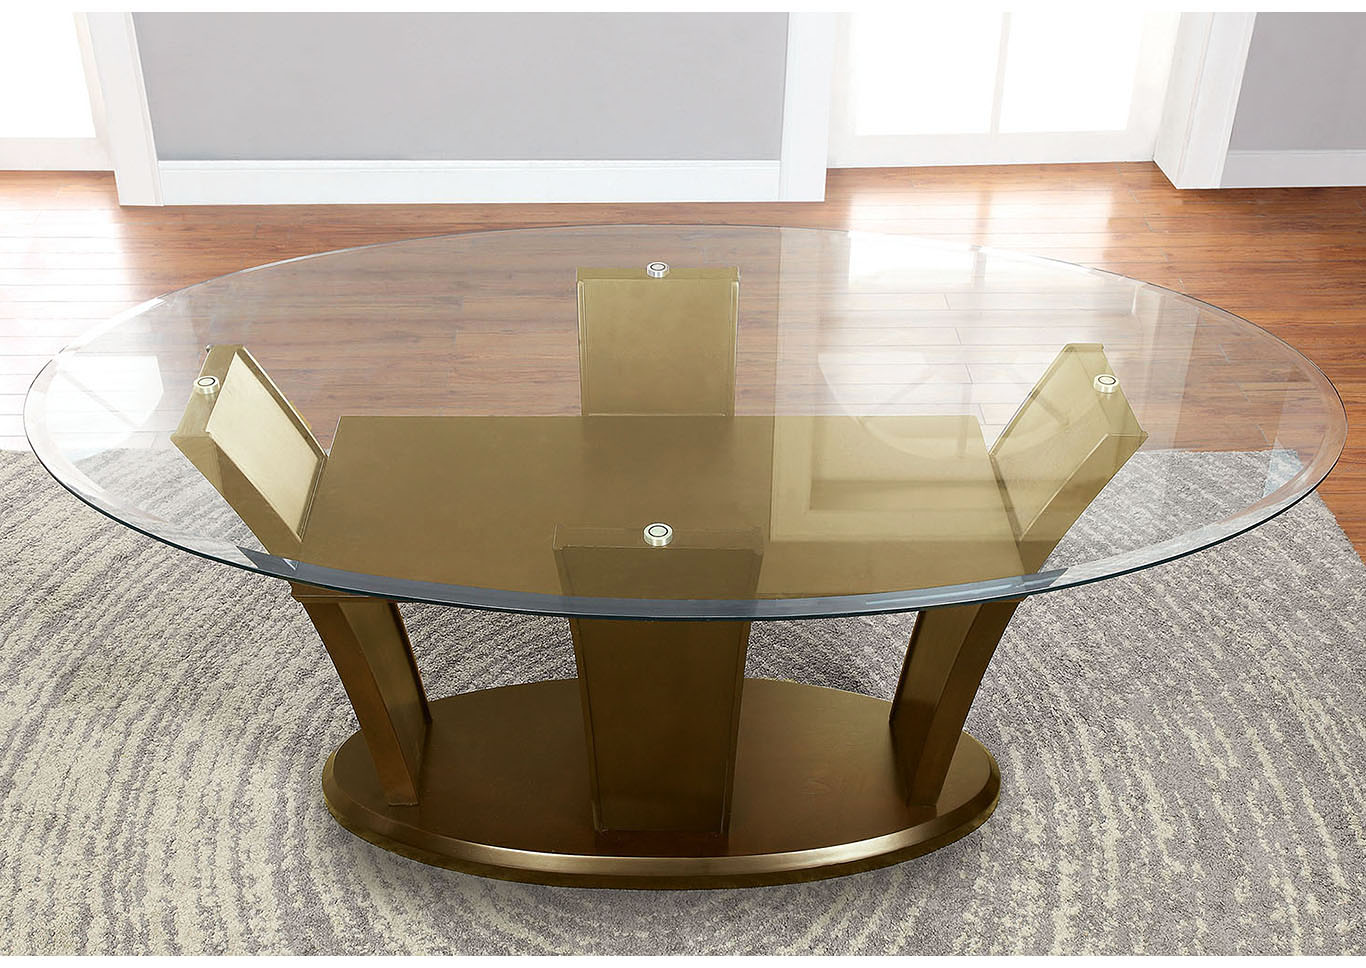 Furniture ville bronx ny manhattan l oval glass top for Furniture ville